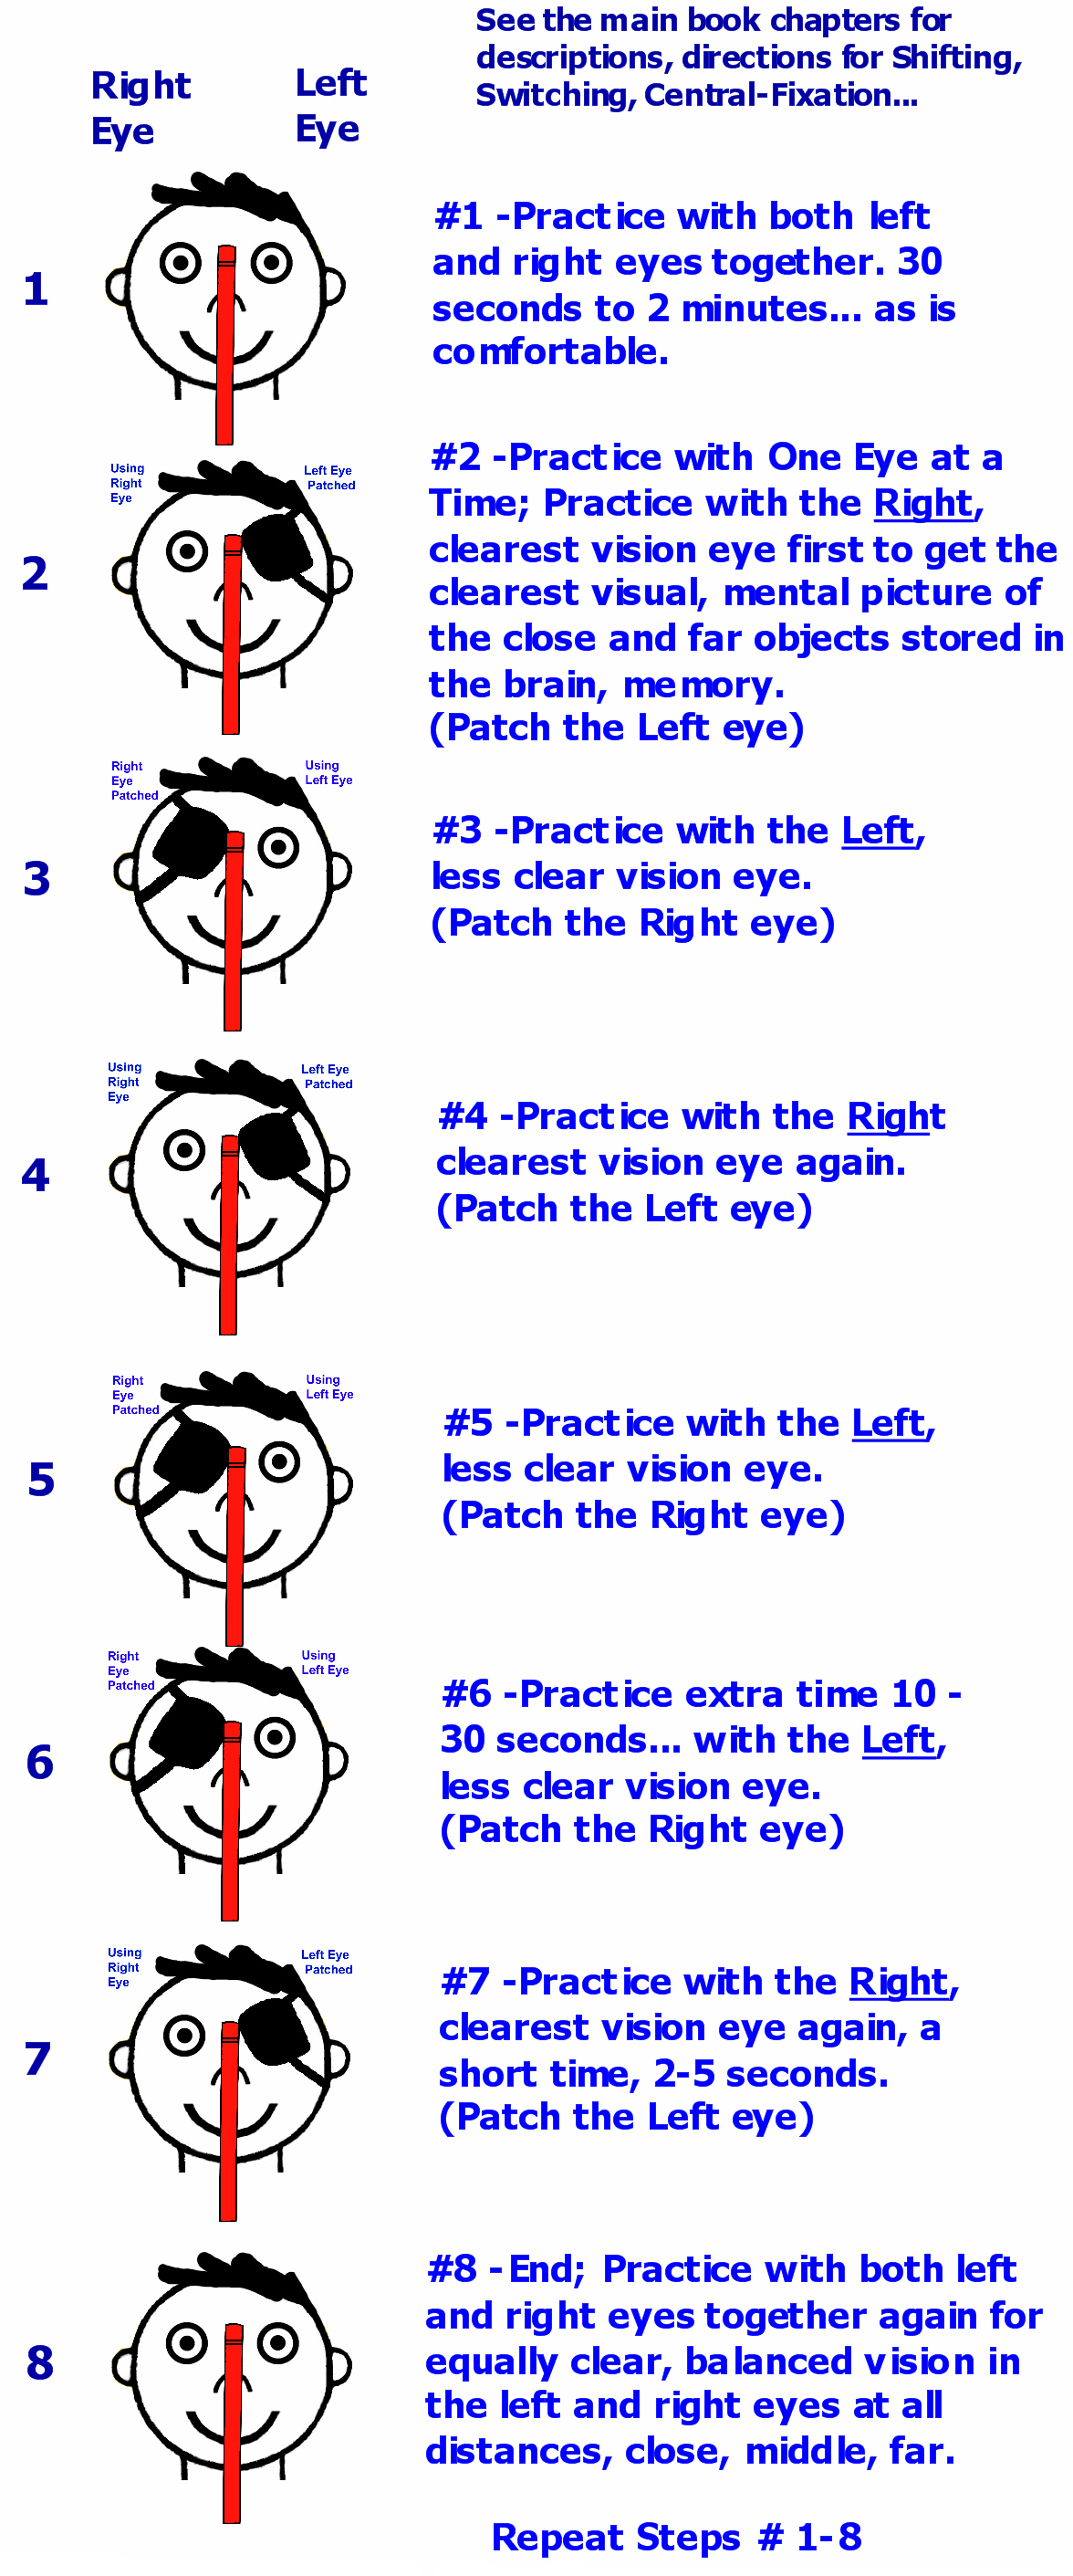 Eight Steps for Switching Close and Far with Both Eyes Together and One Eye at a Time